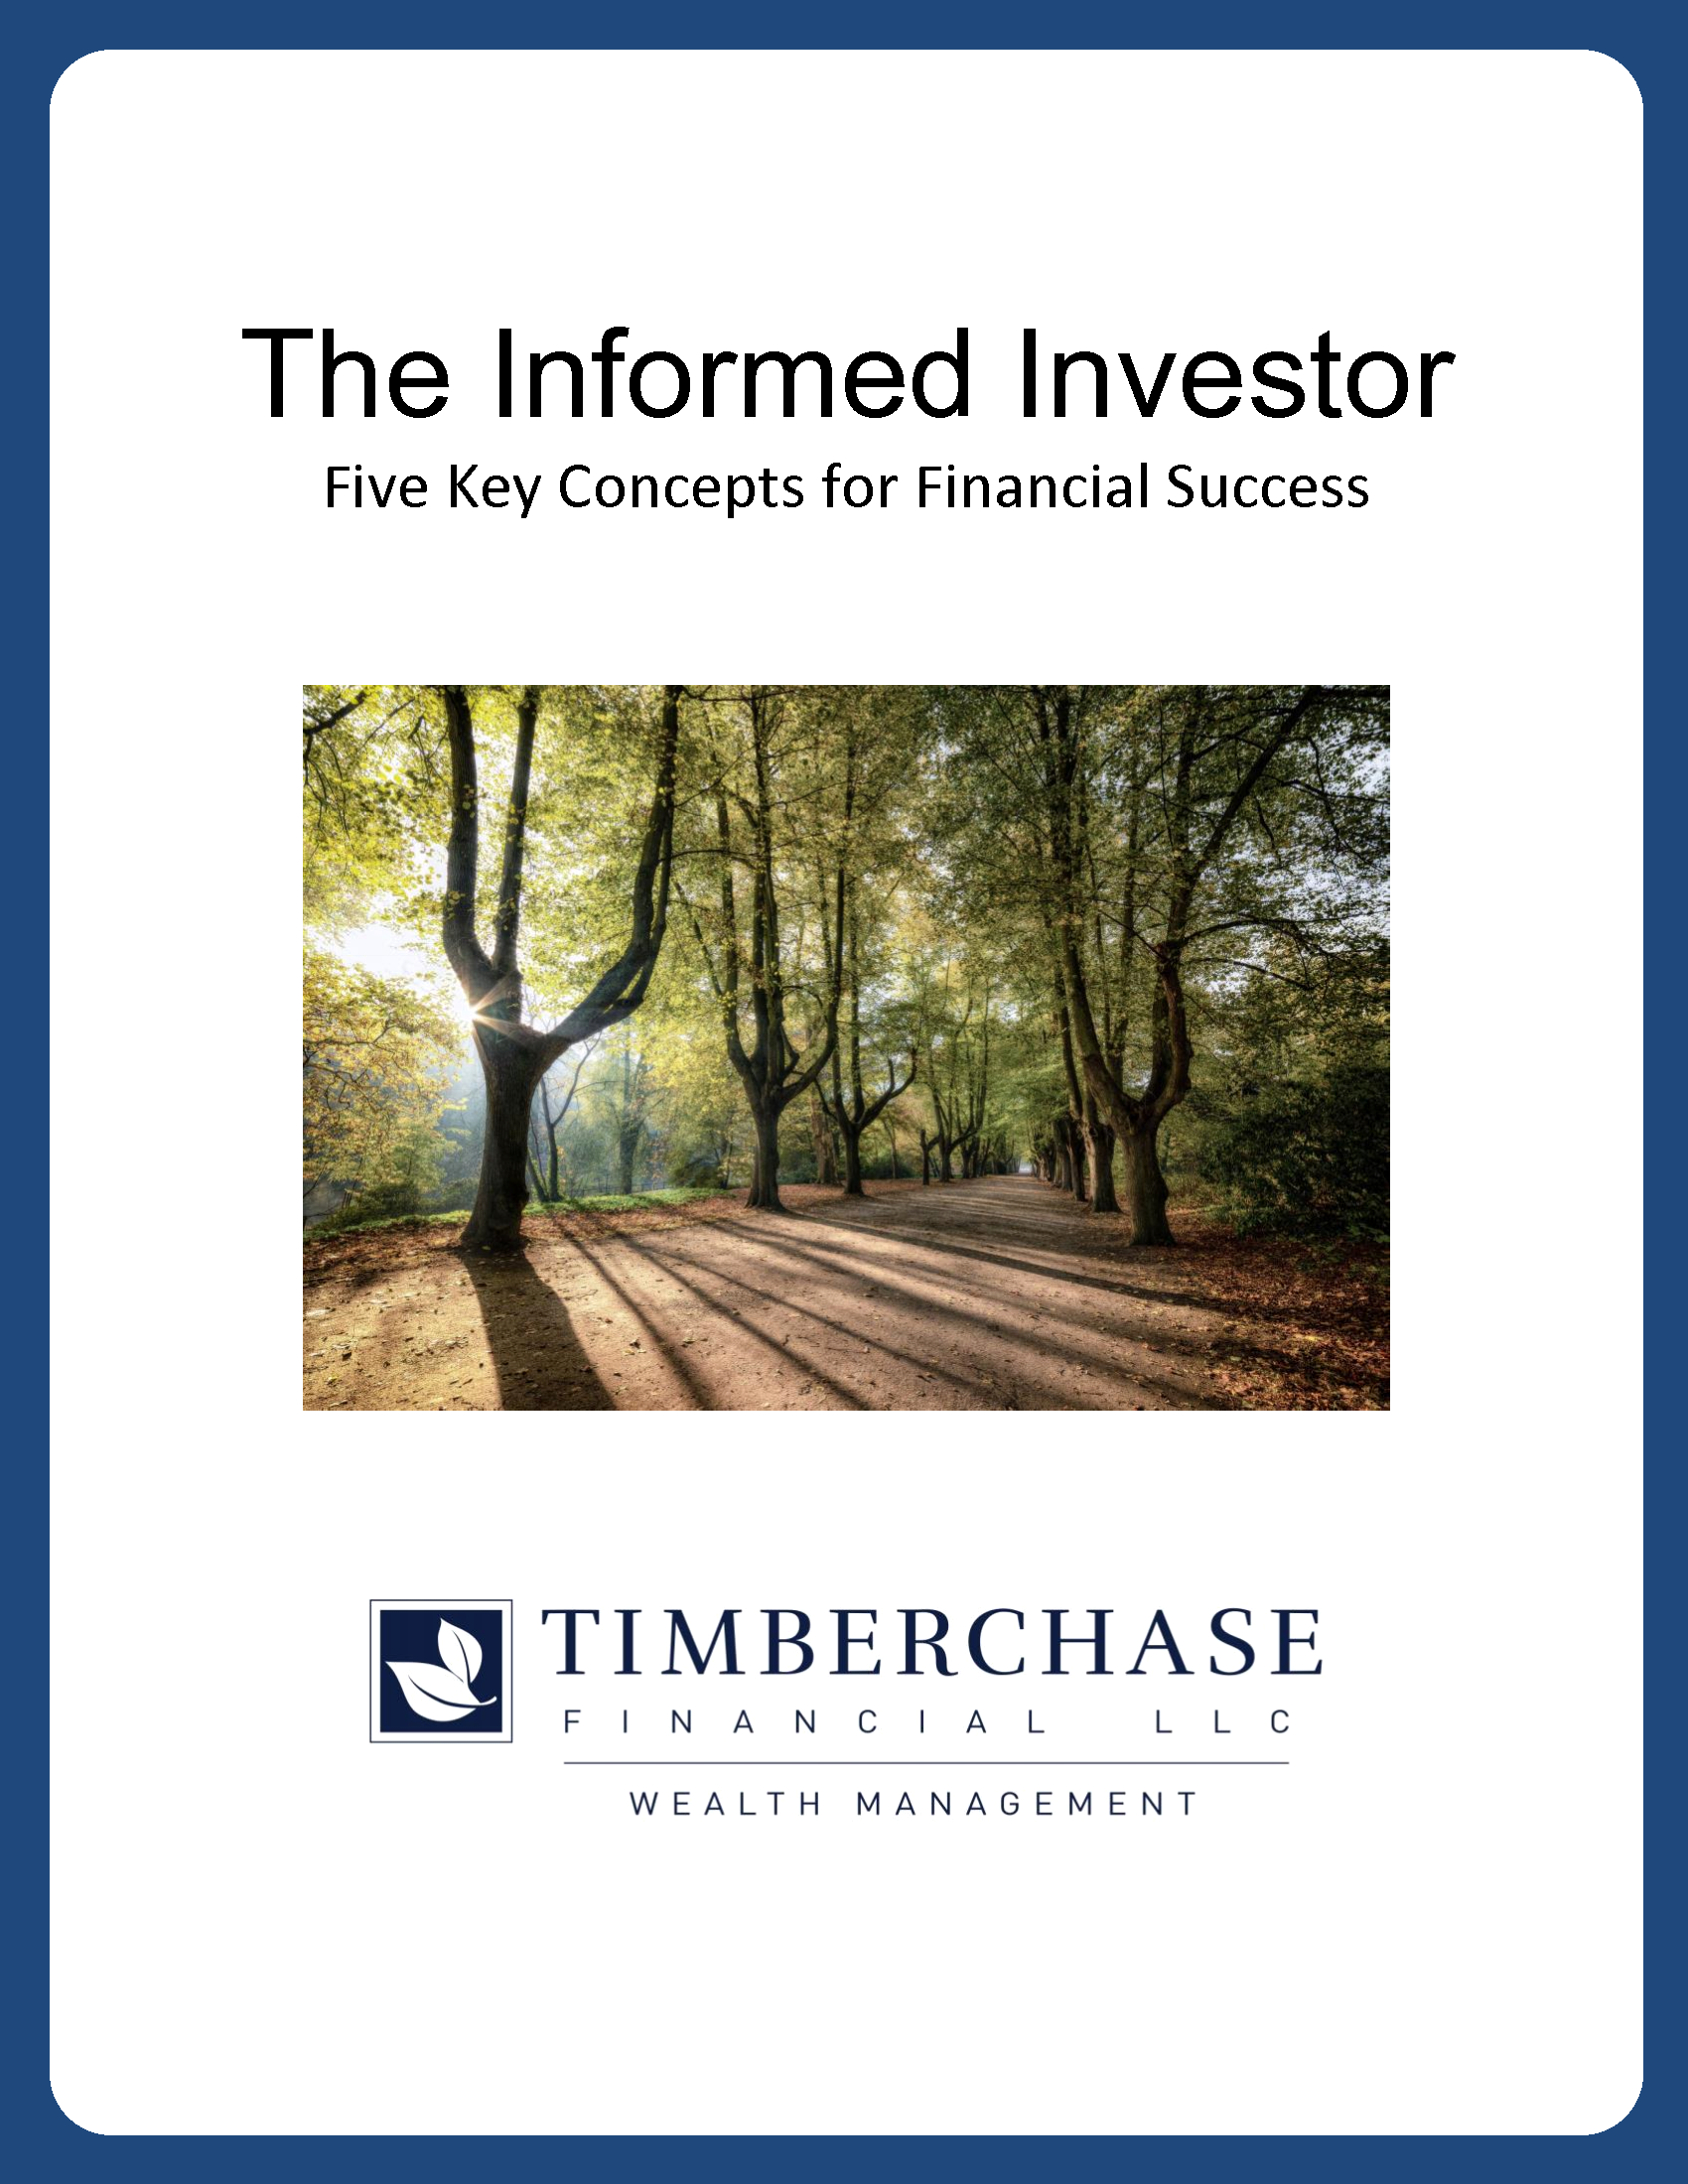 Click here to read our publication The Informed Investor: Five Key Concepts for Financial Success.